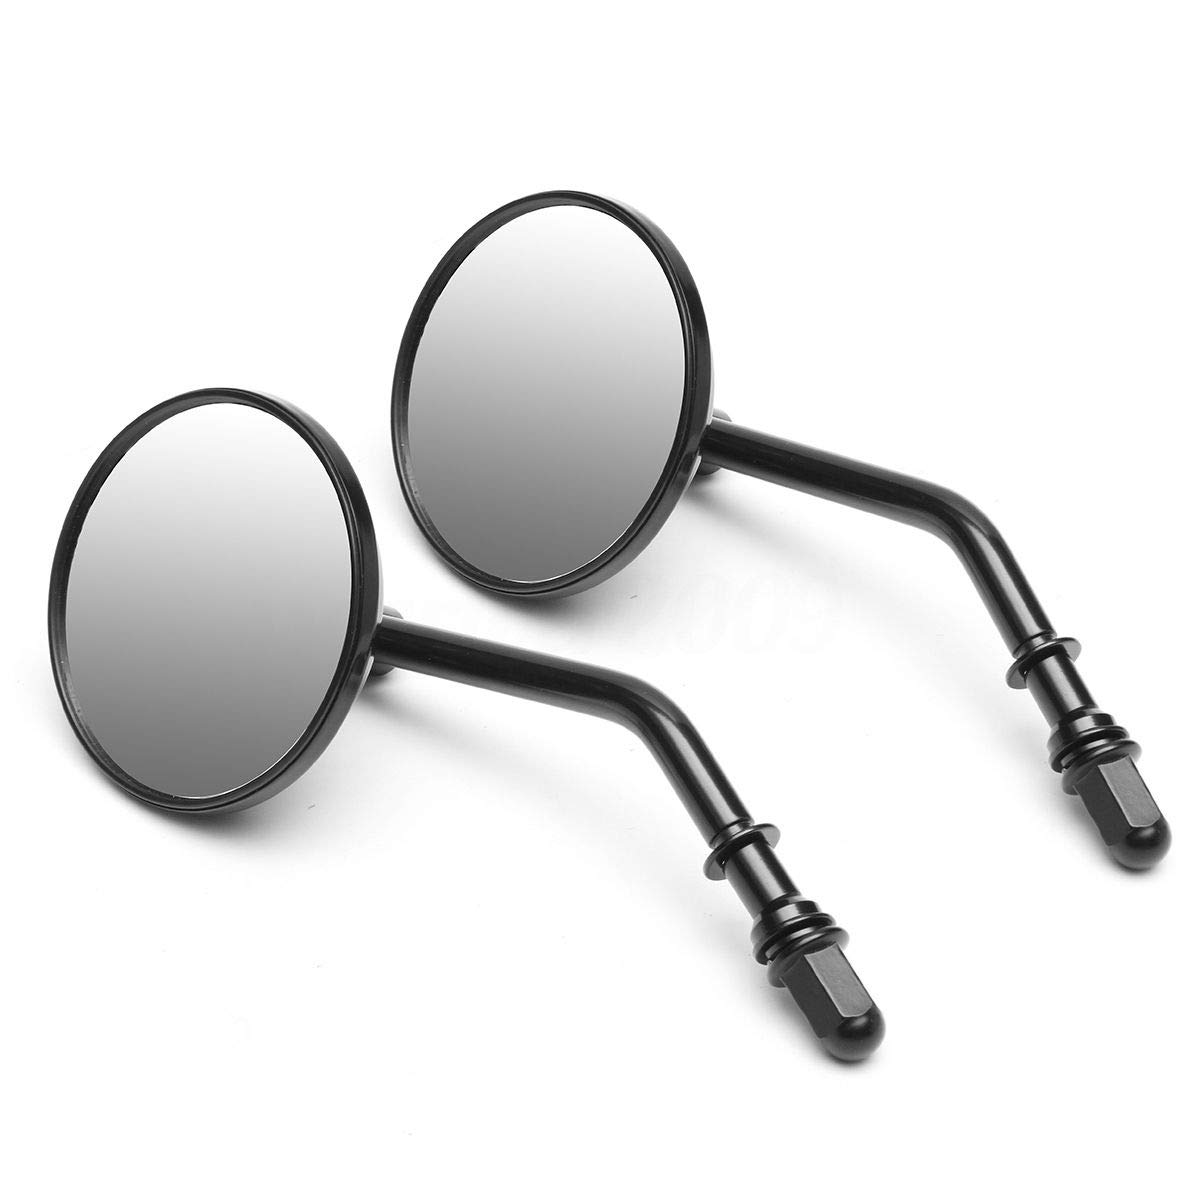 CHELIYA 1 Pair 8mm 3' Classic Retro Motorcycle Rearview Round Mirror for Harley Davidson Sportster Softail Road